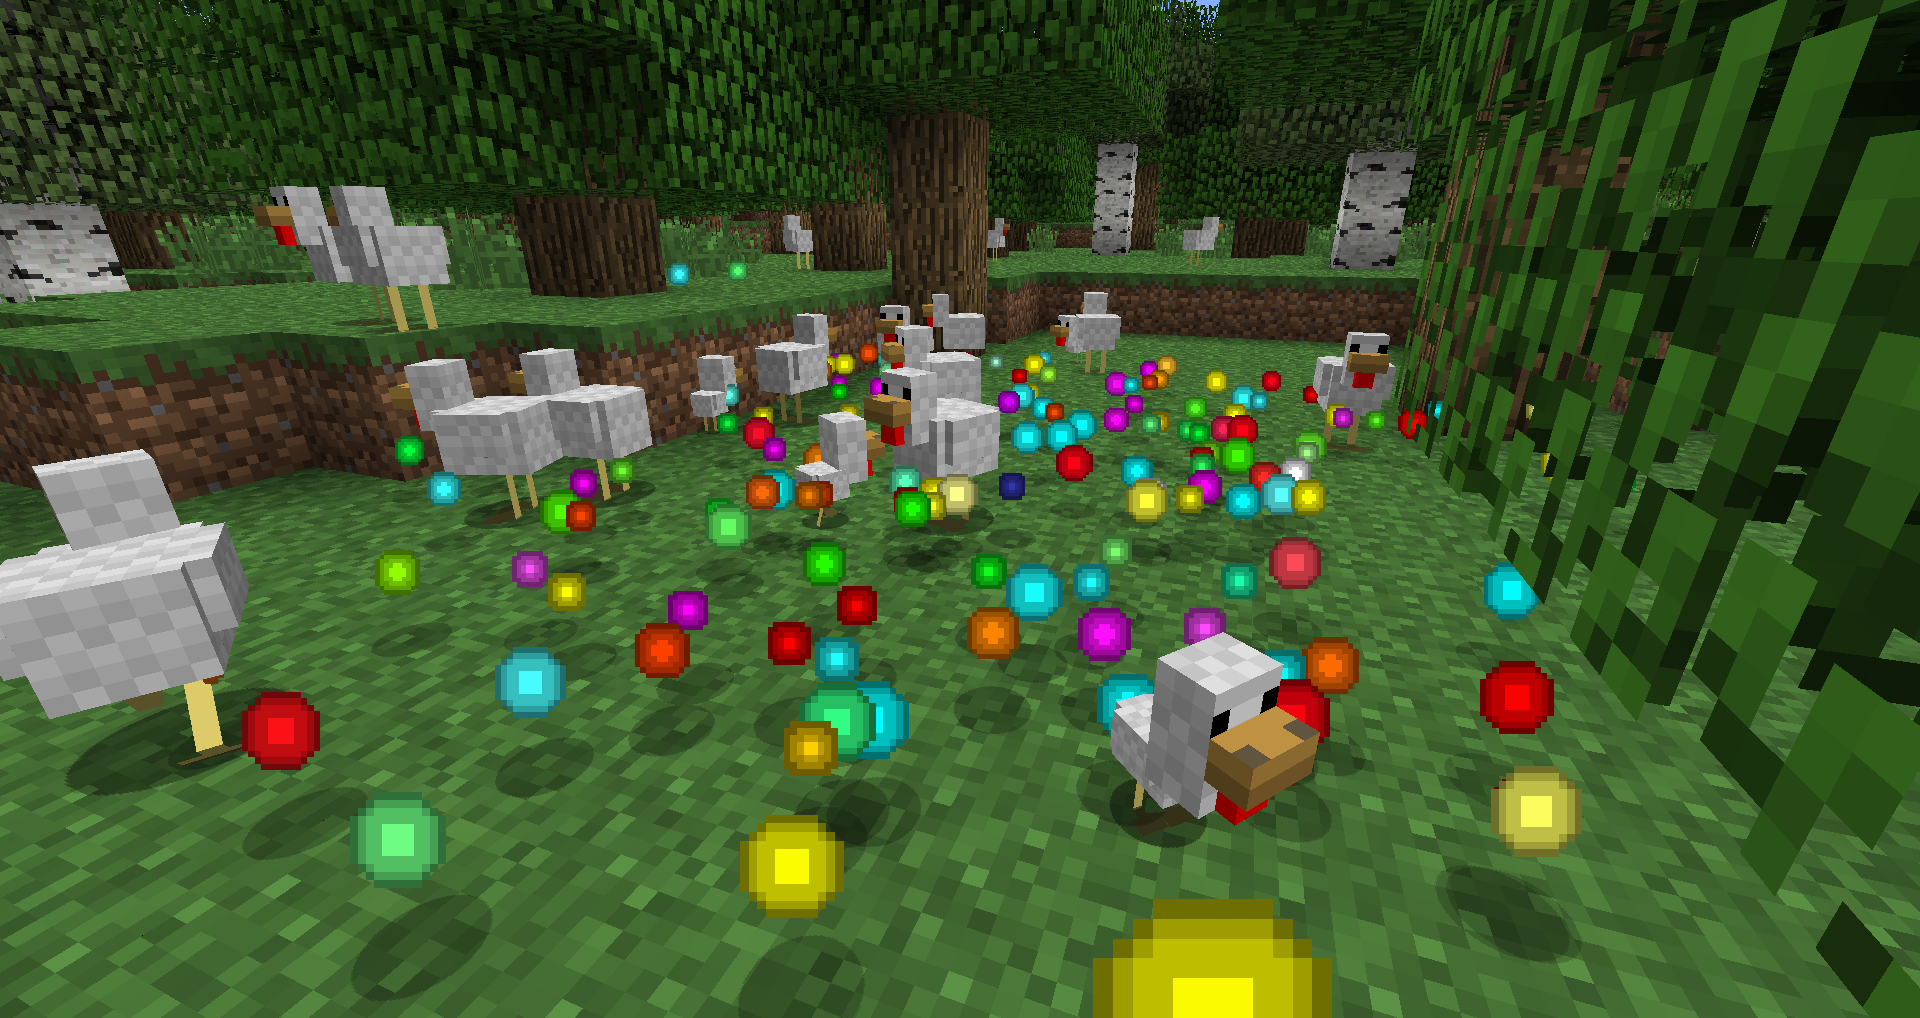 http://minecraft-forum.net/wp-content/uploads/2013/01/fe922__Rainbow-Xp-Mod-3.png